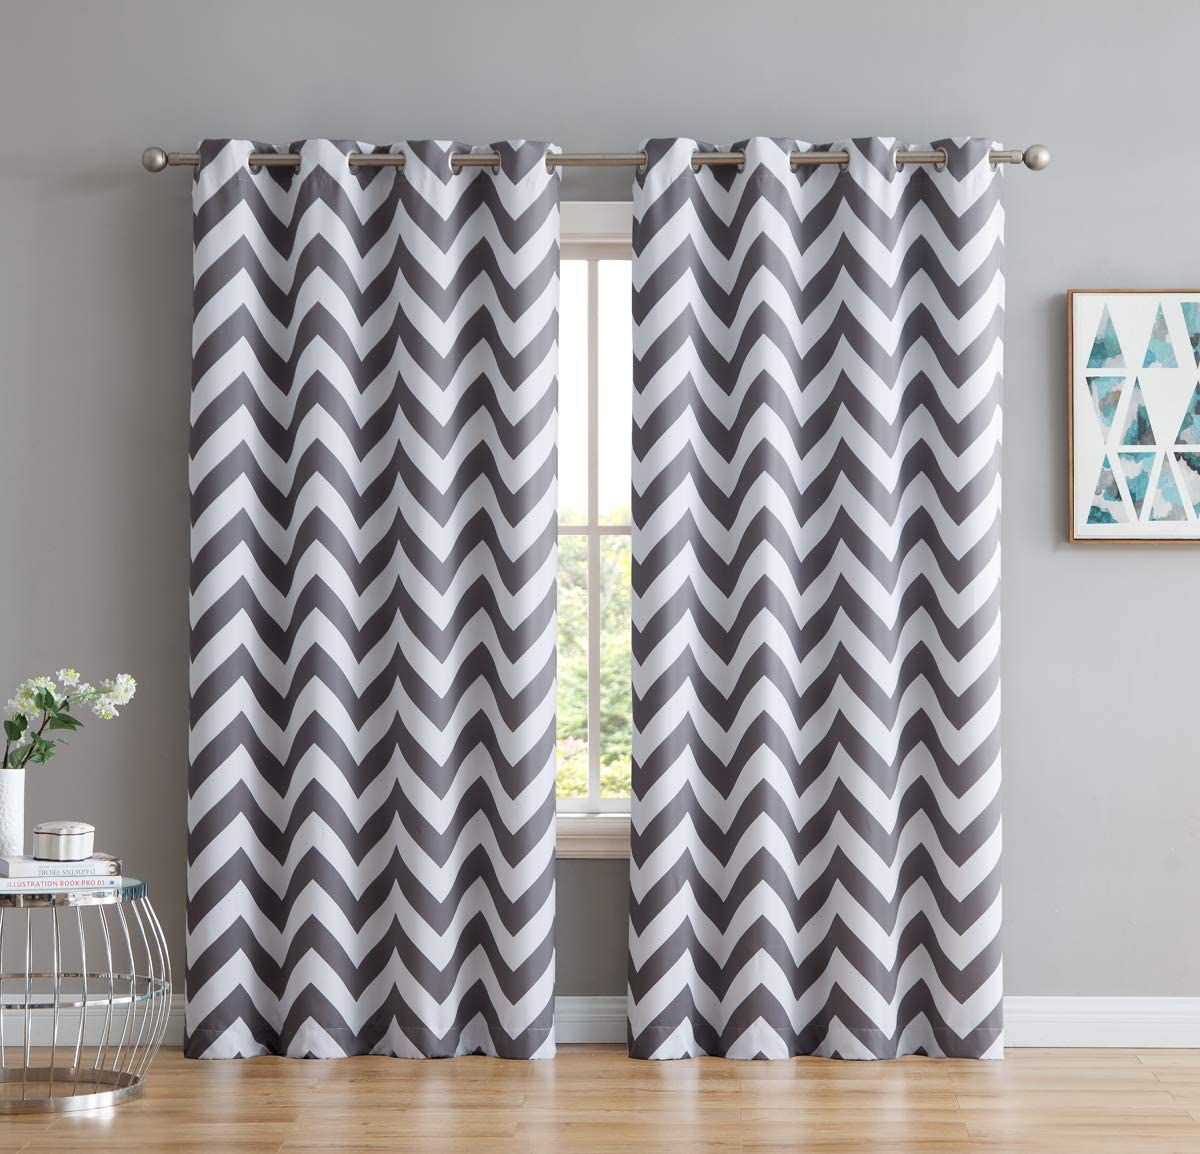 Amazon Com Hlc Me Chevron Print Thermal Insulated Energy Efficient Room Darkening Blackout Window Curtain Grommet Top Panels For Bedroom Nursery Set Of 2 52 W X 84 L Grey Home